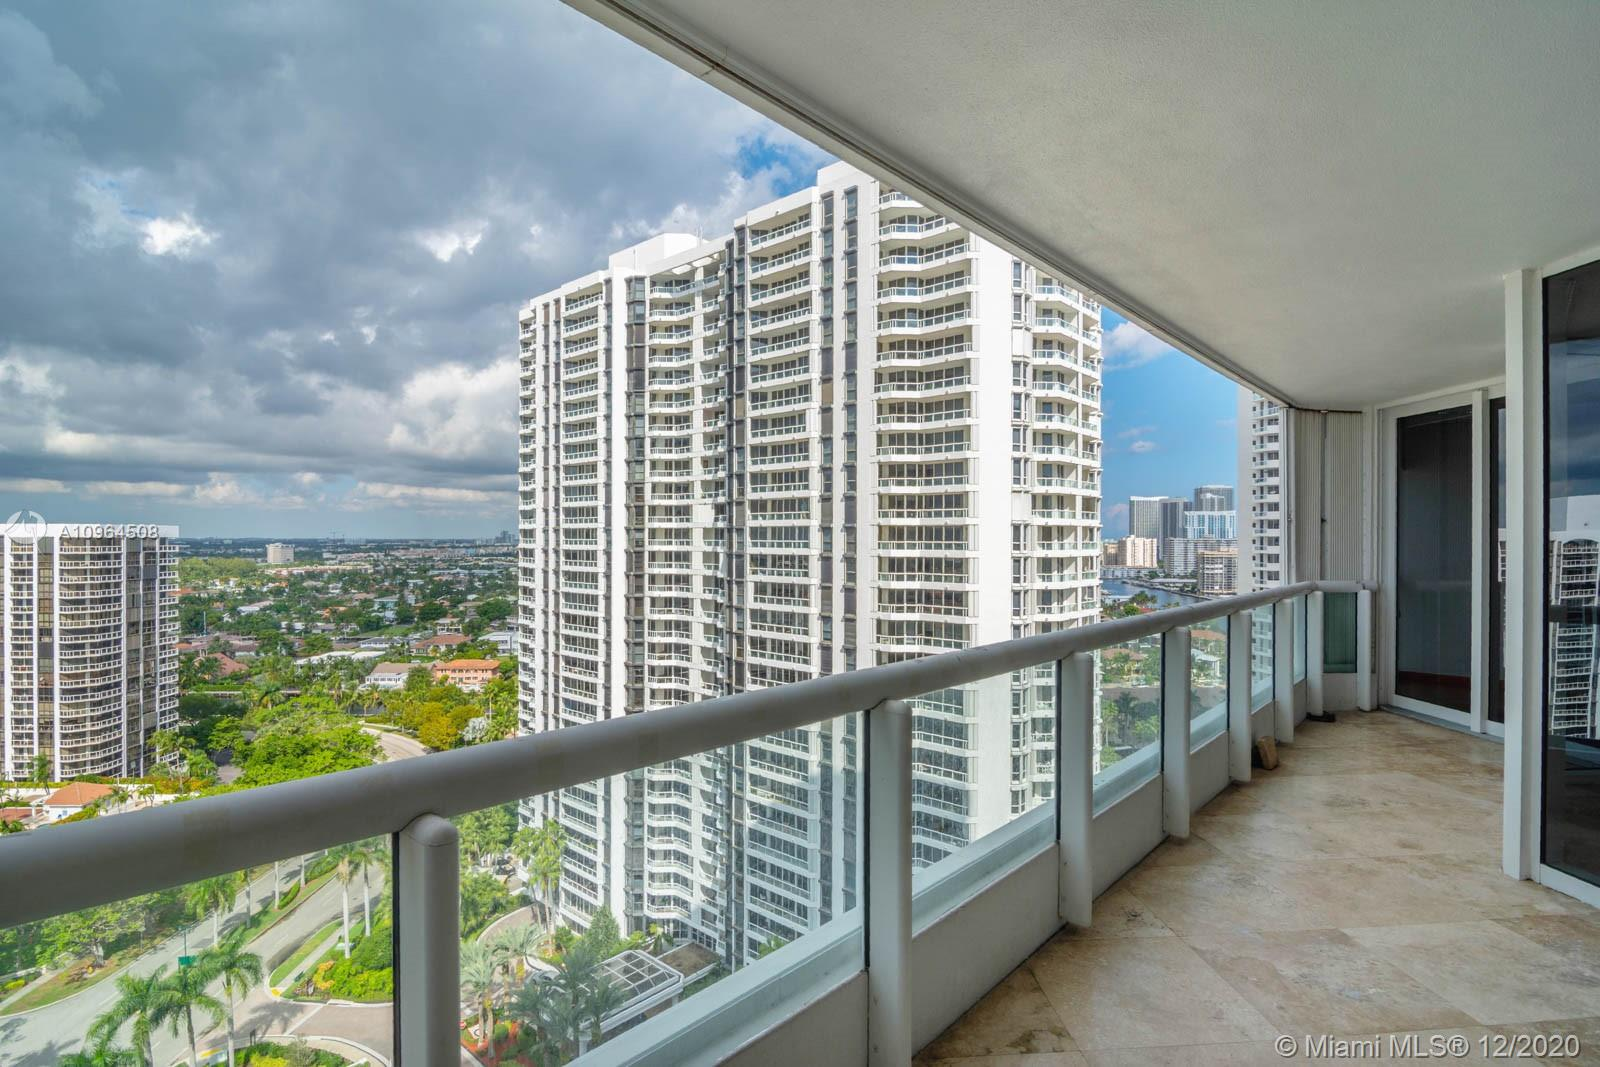 South Tower at the Point #2104 - 21055 yacht club dr #2104, Aventura, FL 33180